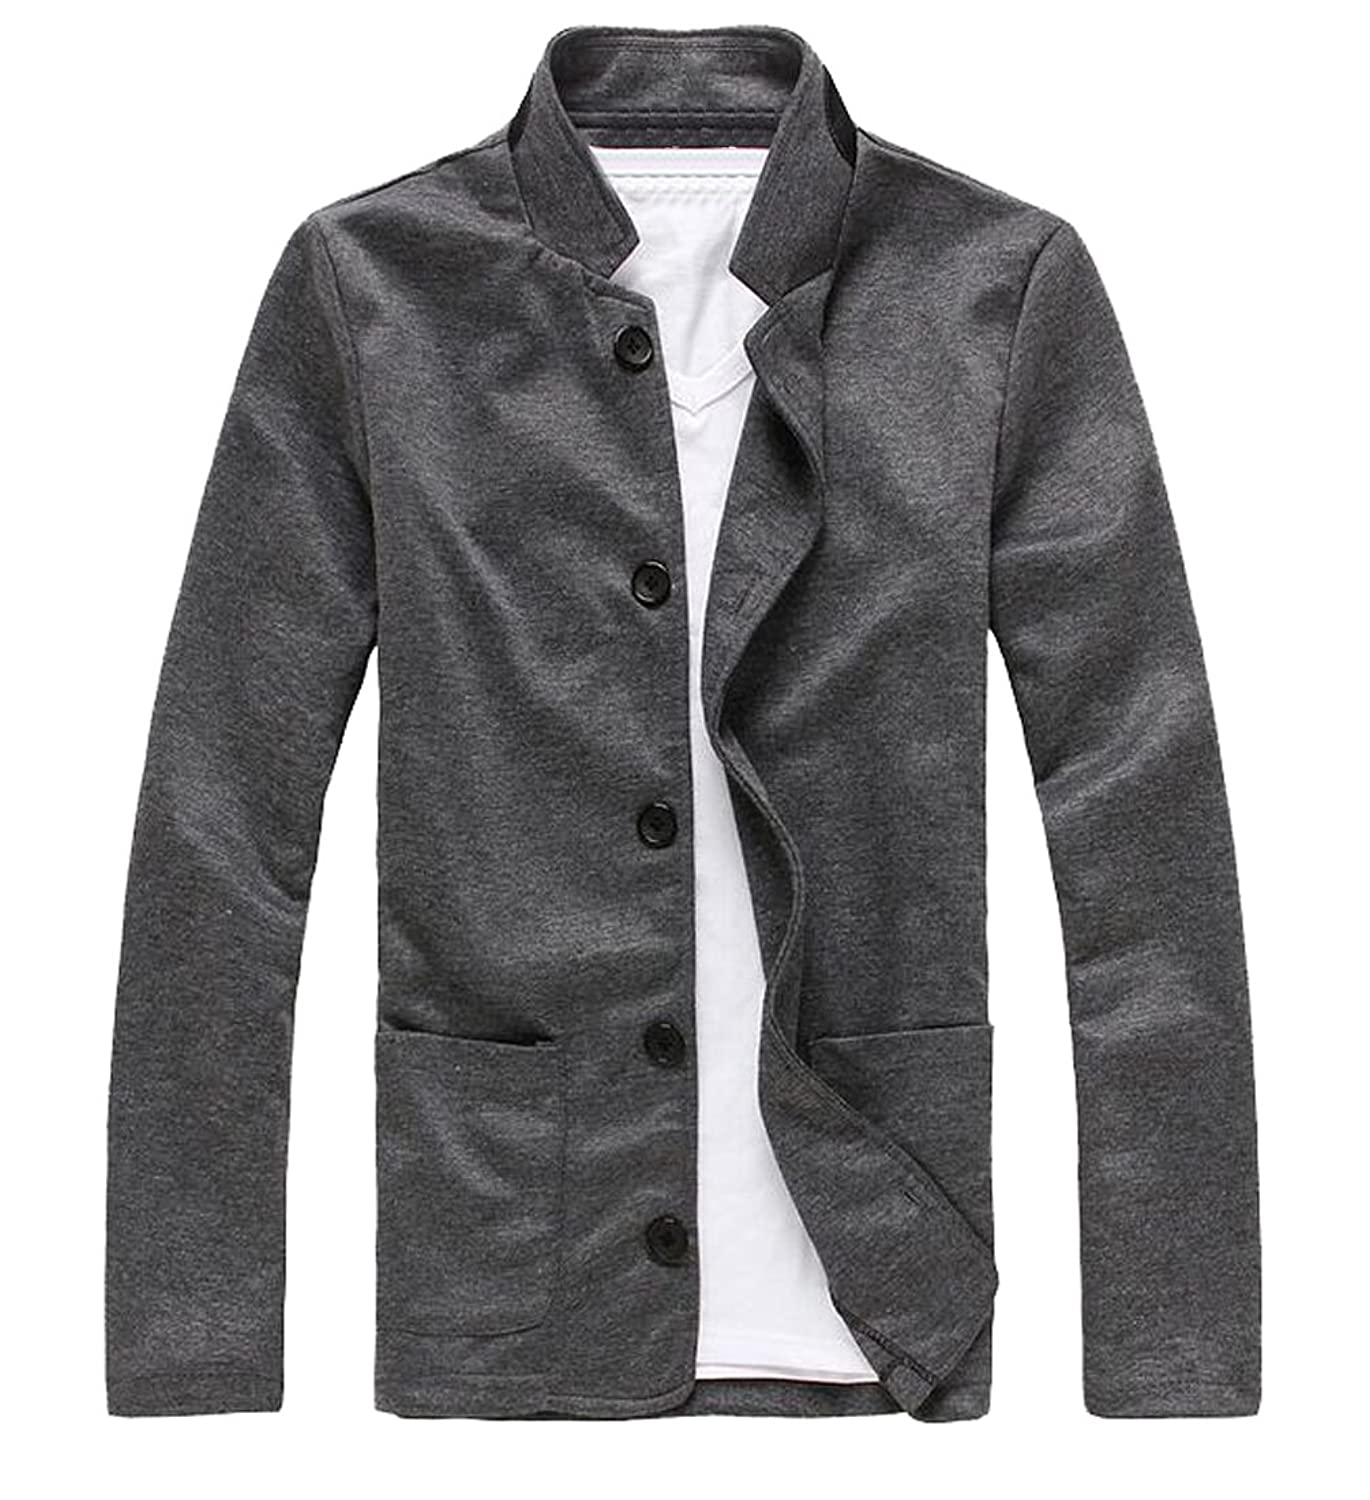 XQS Mens Hipster Thicken Quilted Stand Collar Front-Zip Loose Fit Down Jacket Coat